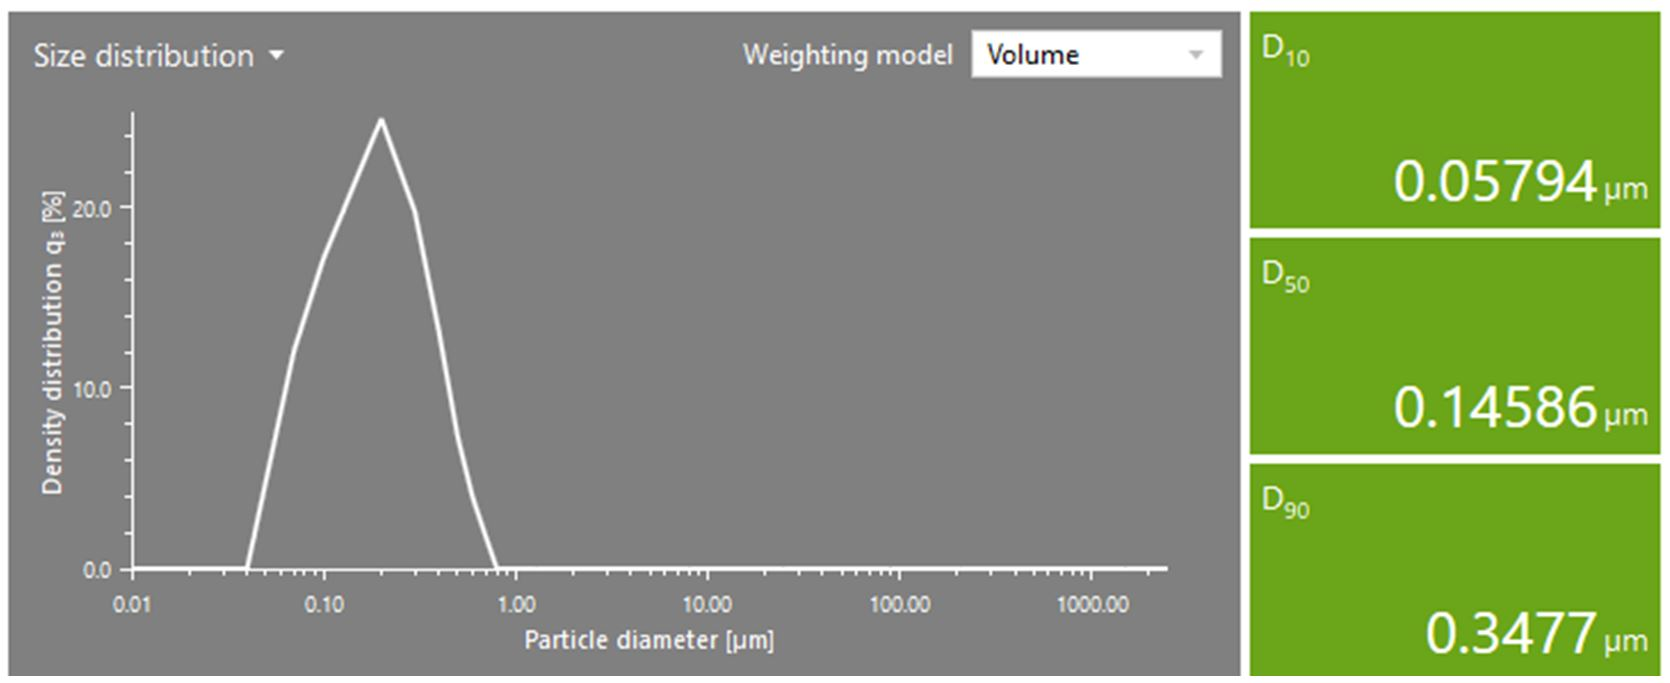 Figure 3: Particle size distribution of polystyrene latex measured by LD (volume-based)